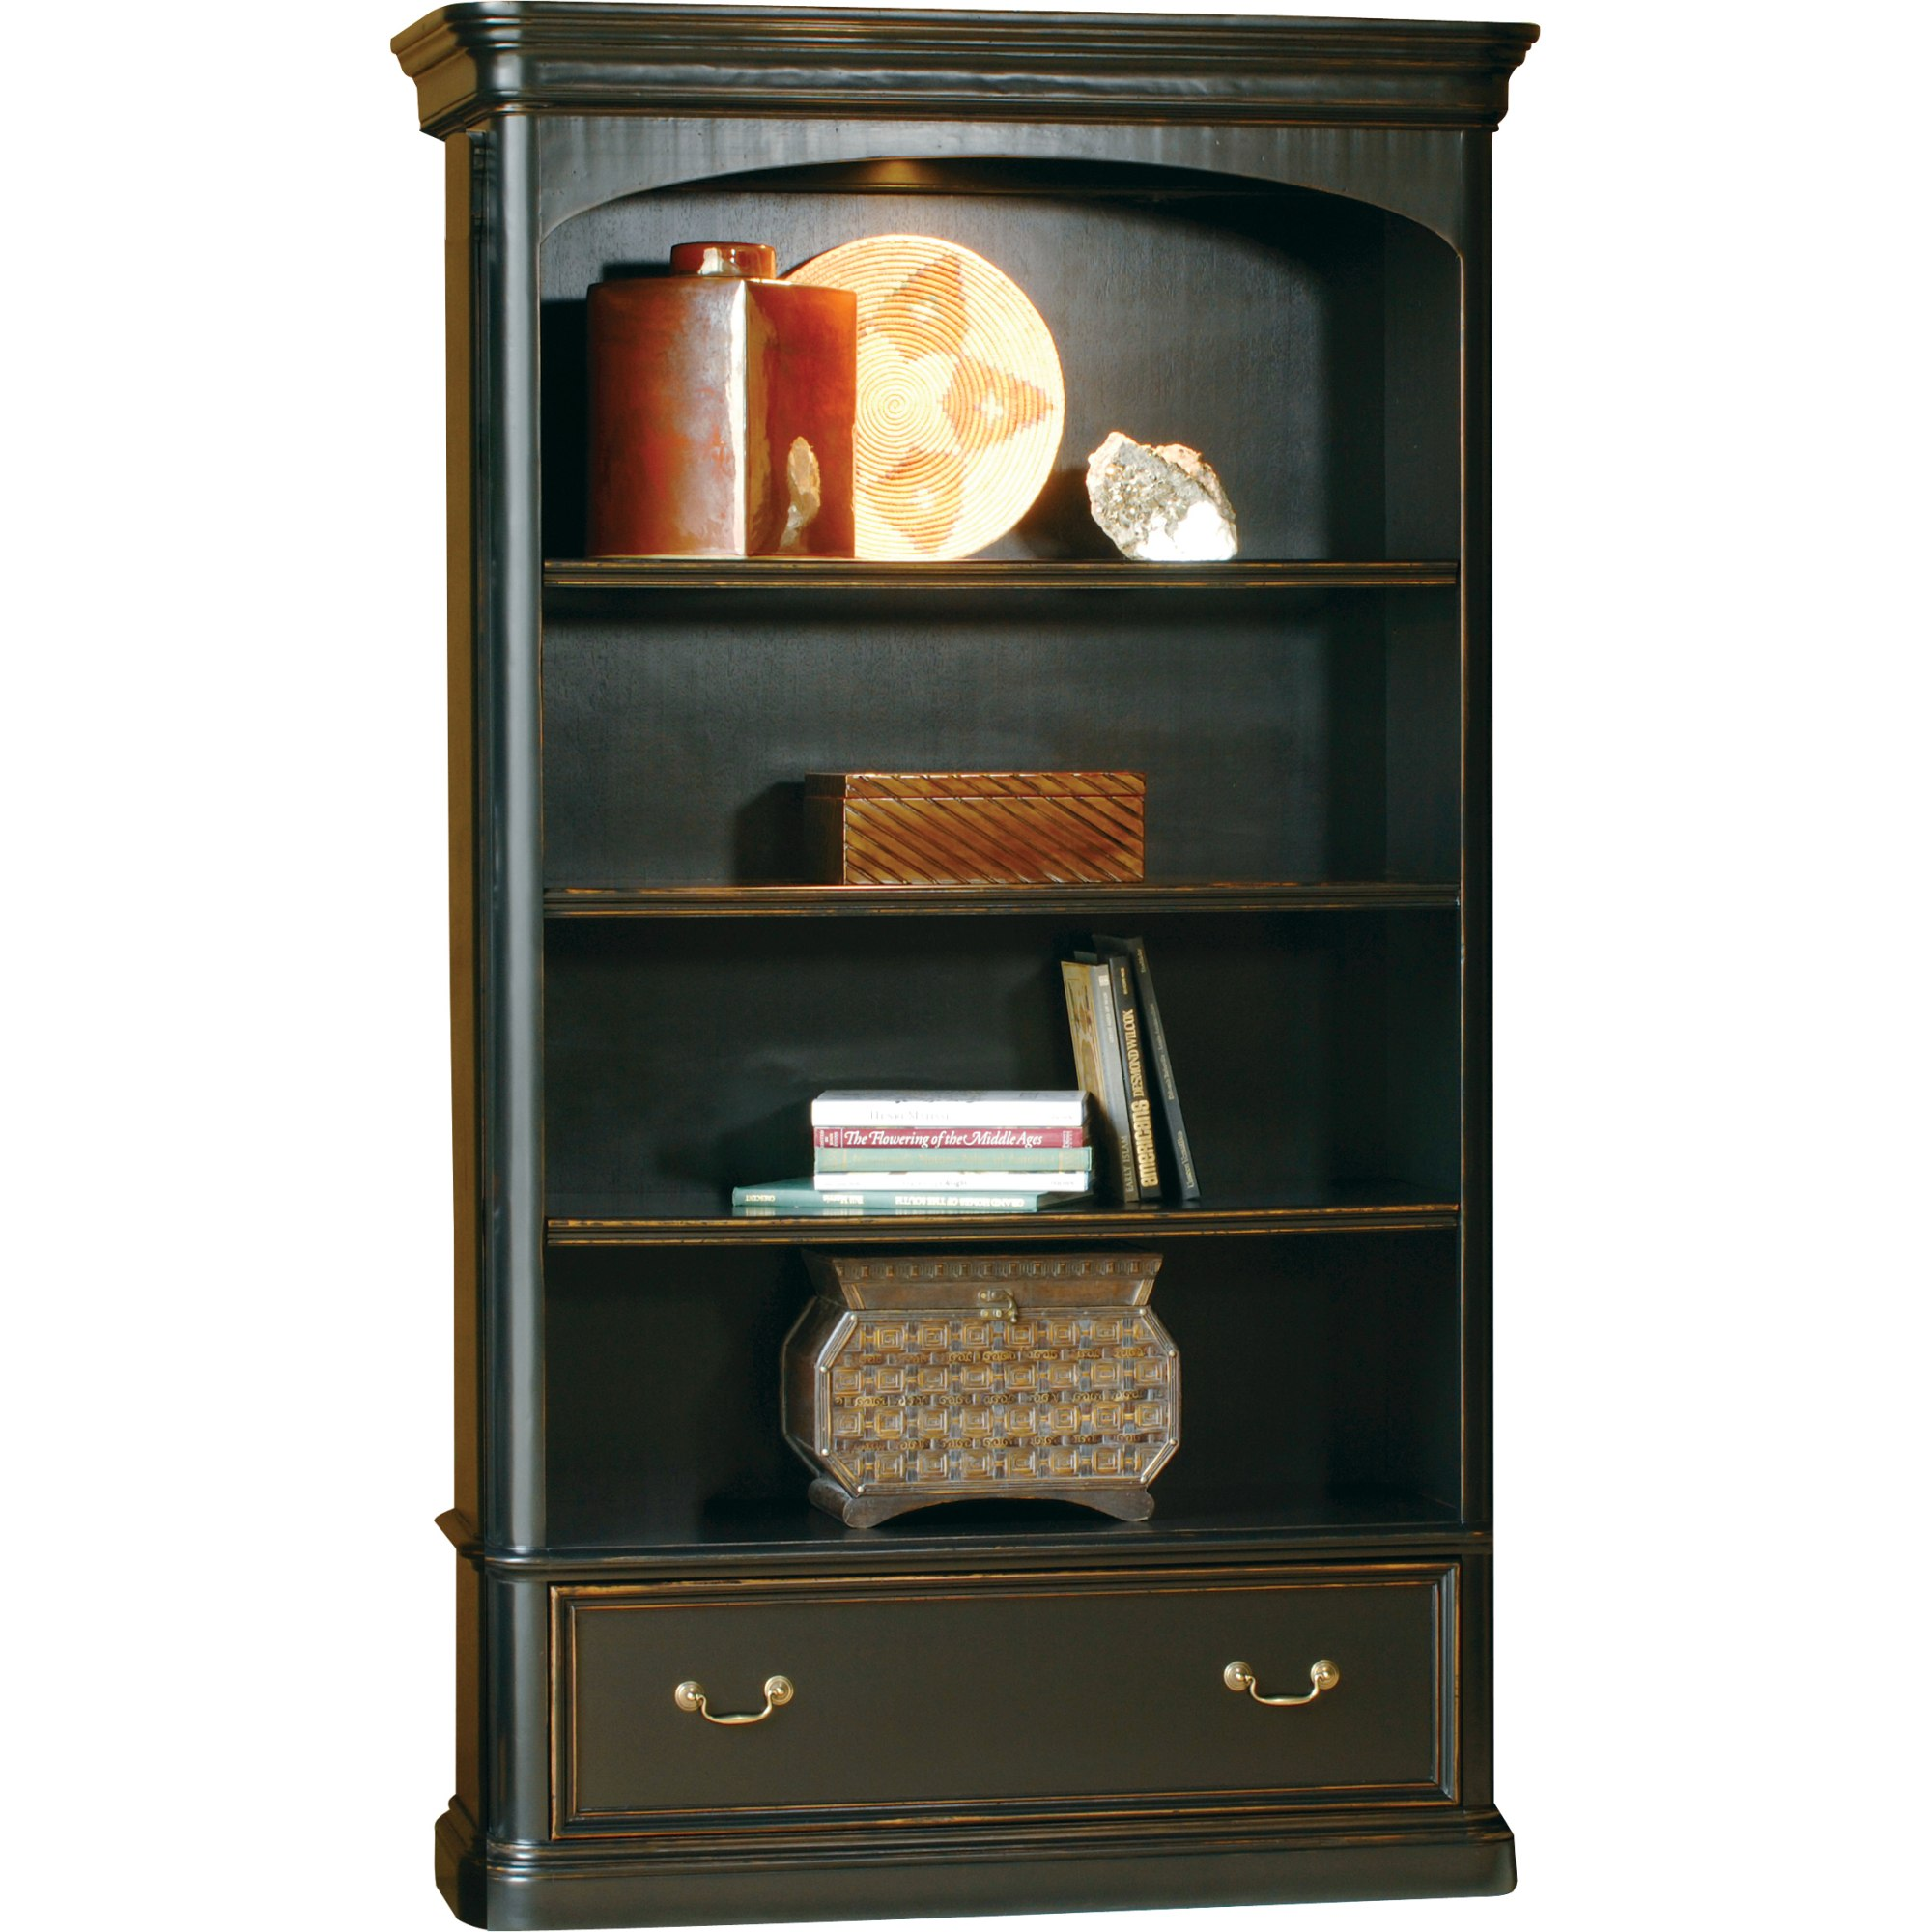 Image for 7-9144 office@home Louis Philippe Bookcase from Hekman Official Website